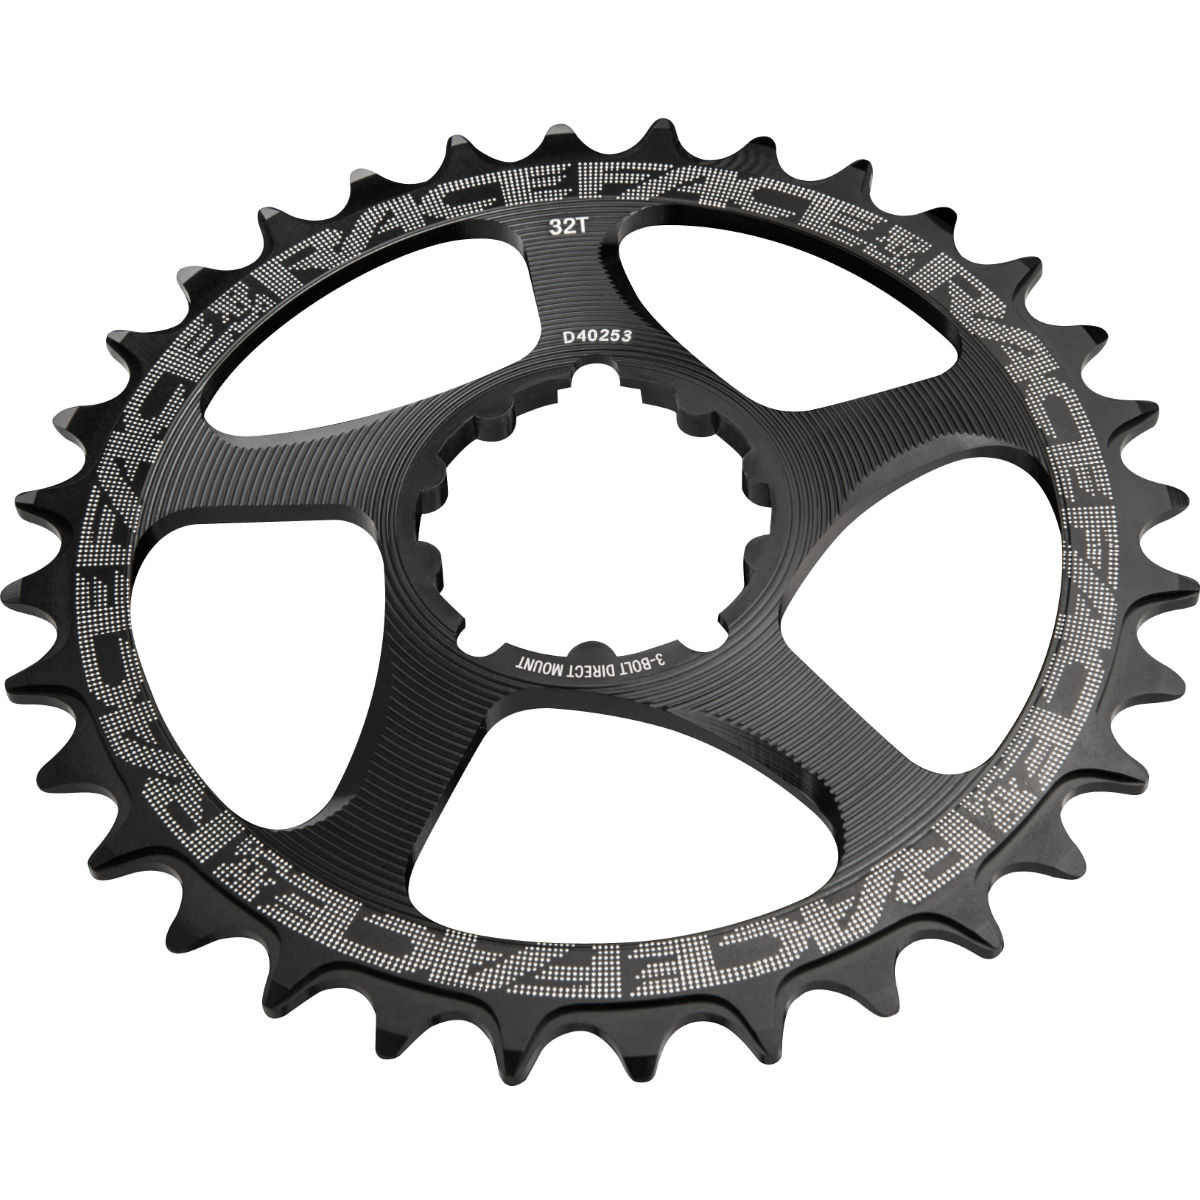 Race Face Direct Mount Sram Narrow/wide Single Chainring - 26t Black